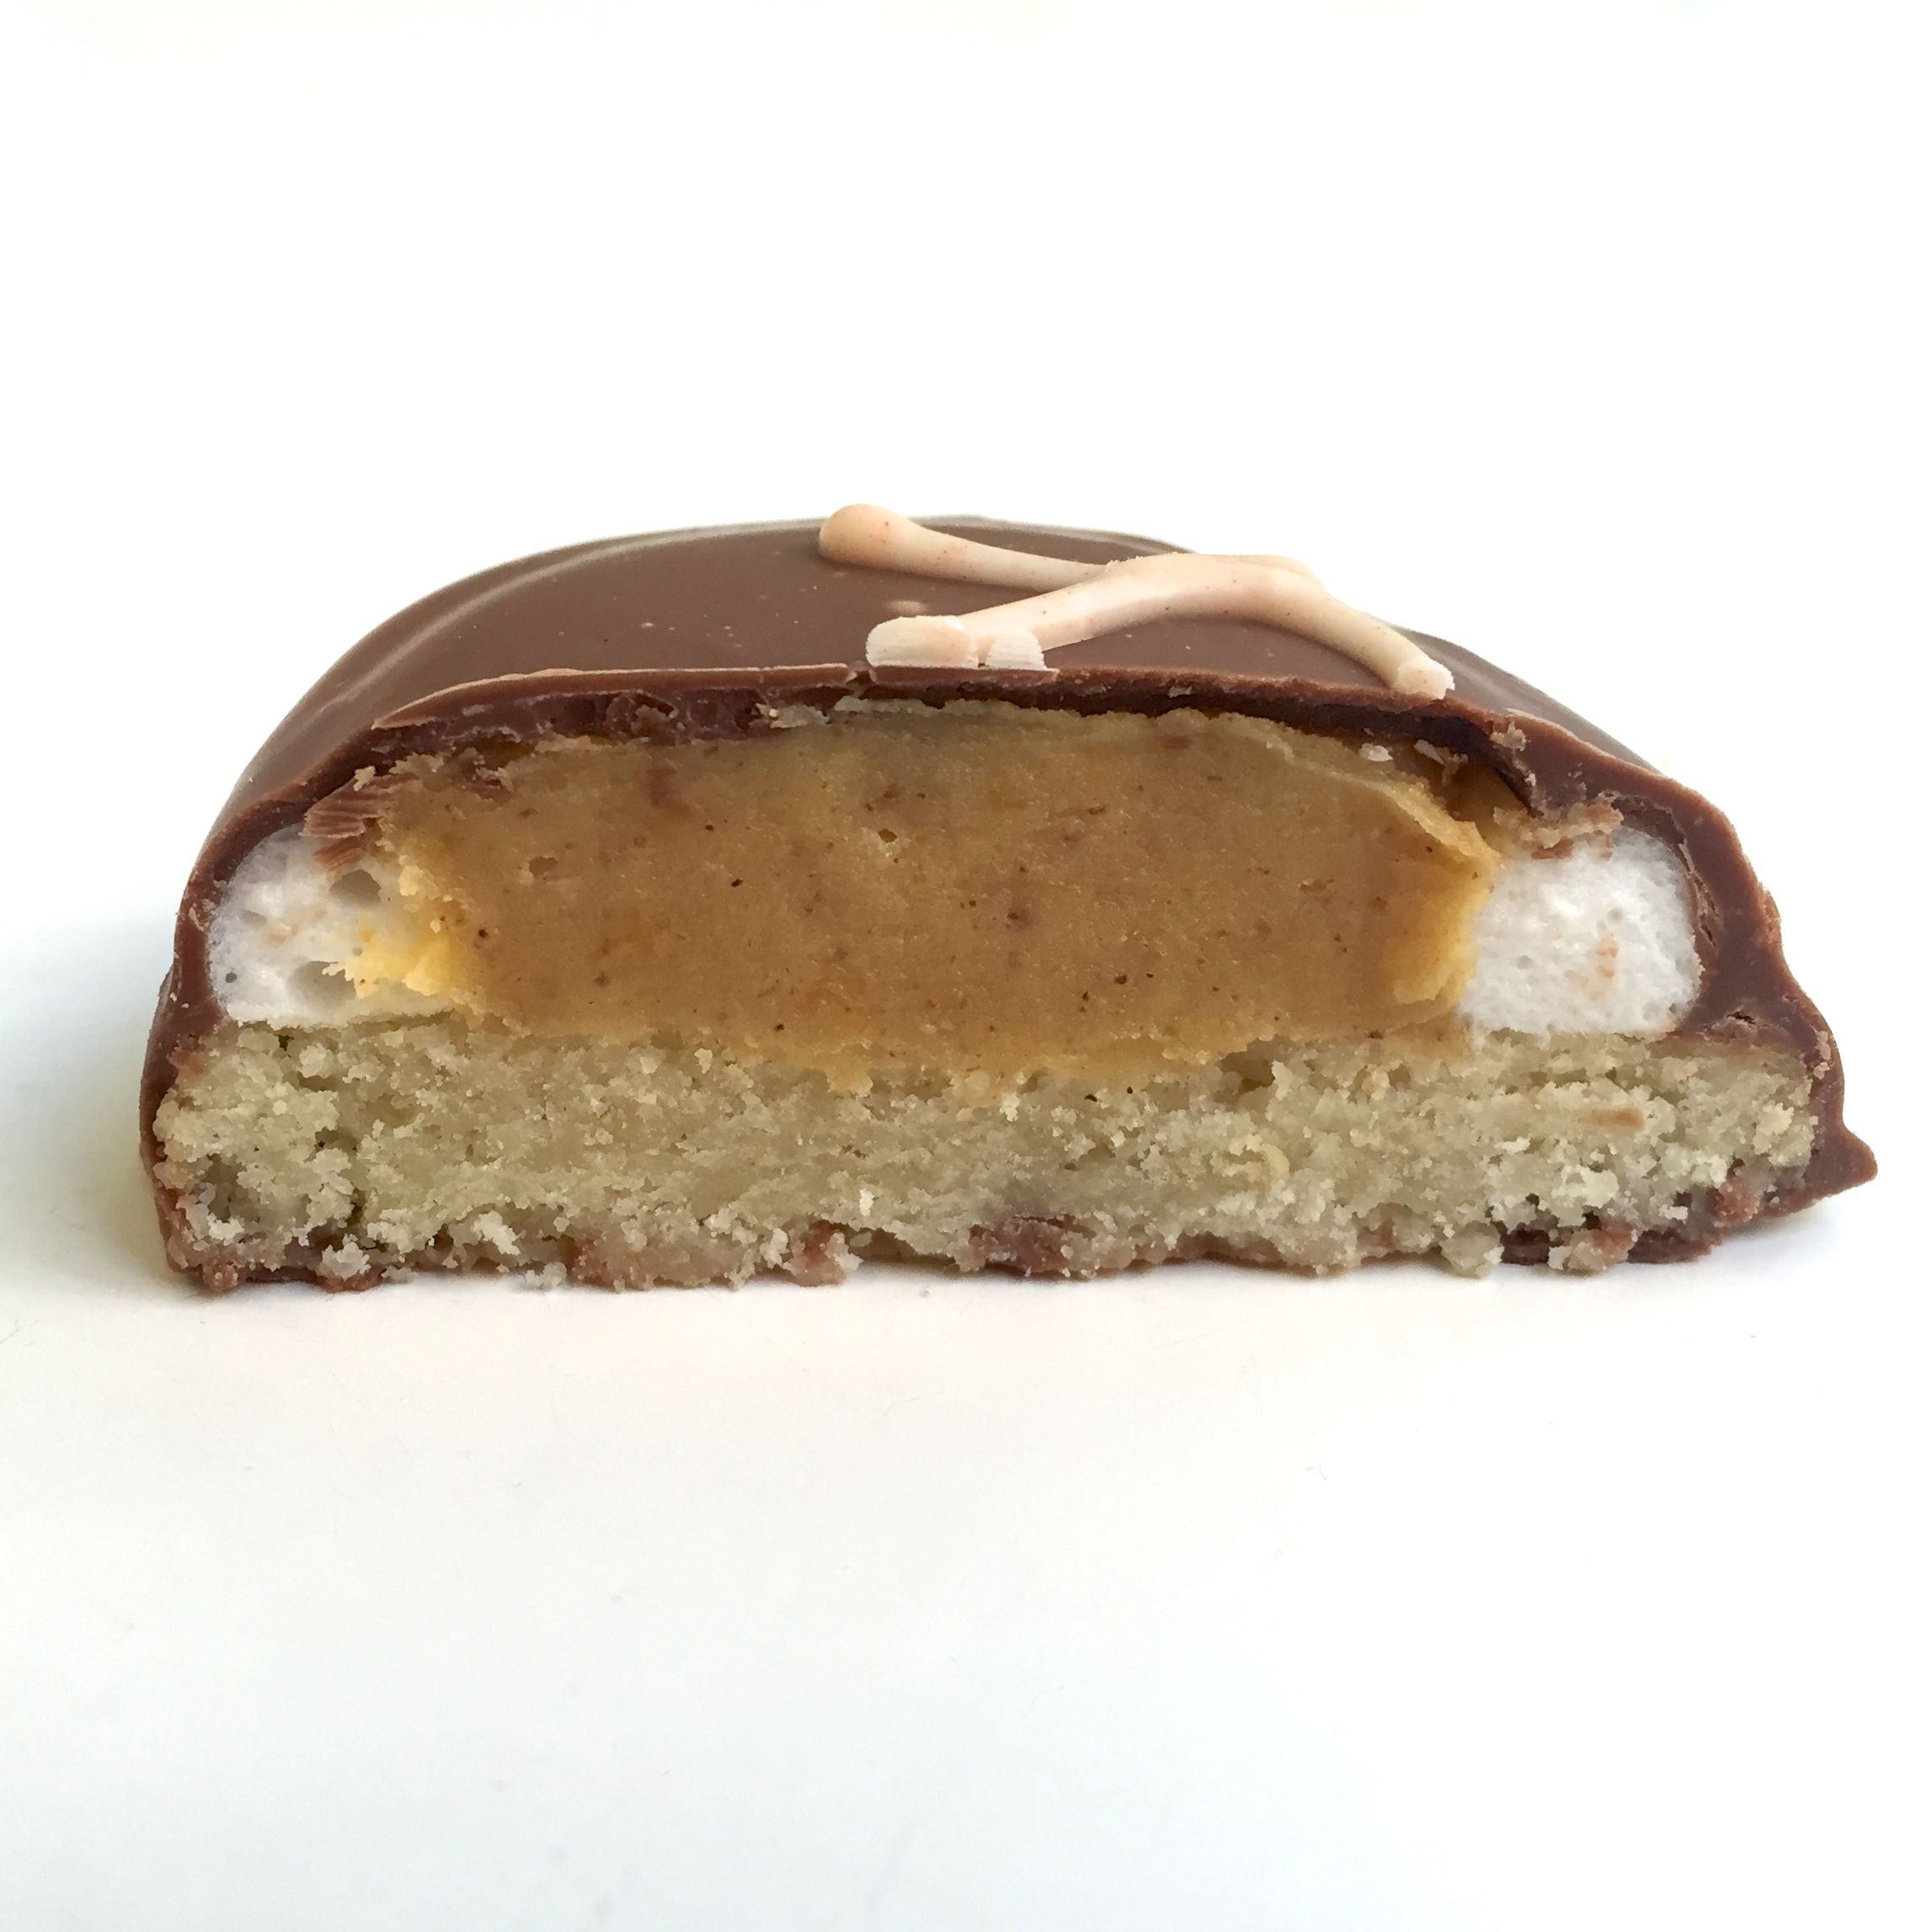 Pumpkin Pie Cookie from Liddabit Sweets! Cookie, marshmallow, pumpkin pie ganache, milk chocolate. Any questions?